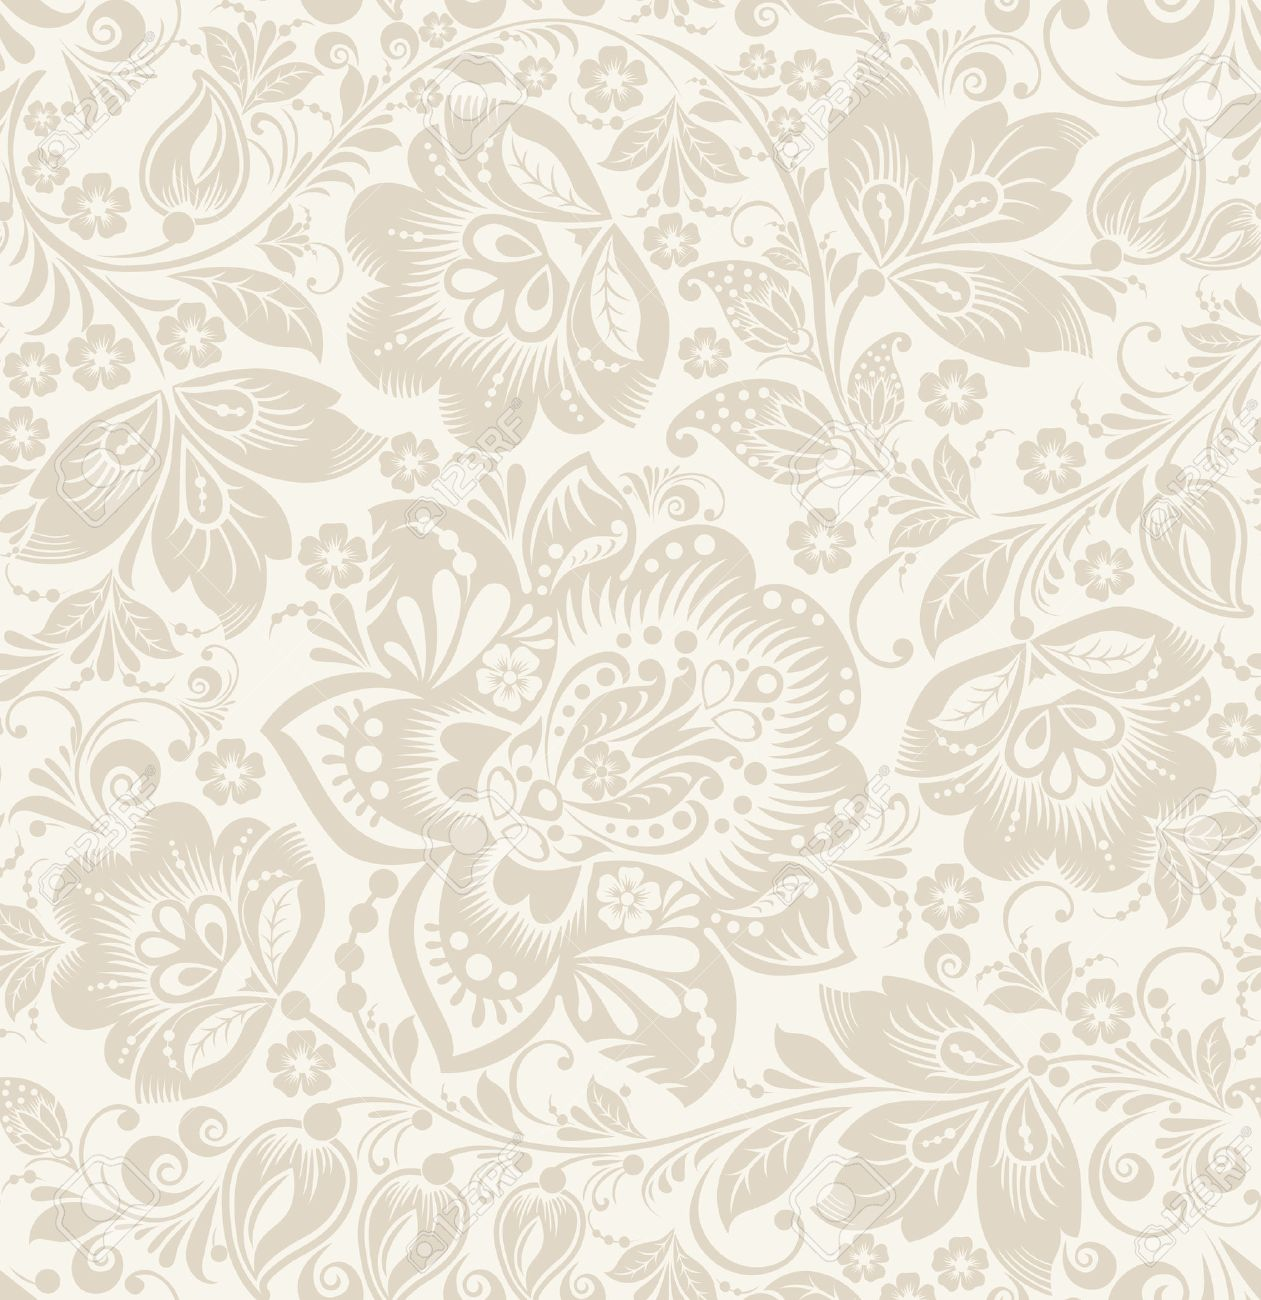 Vector Floral vintage rustic seamless pattern. Background can be used for wallpaper, fills, web page, surface textures. - 45664588